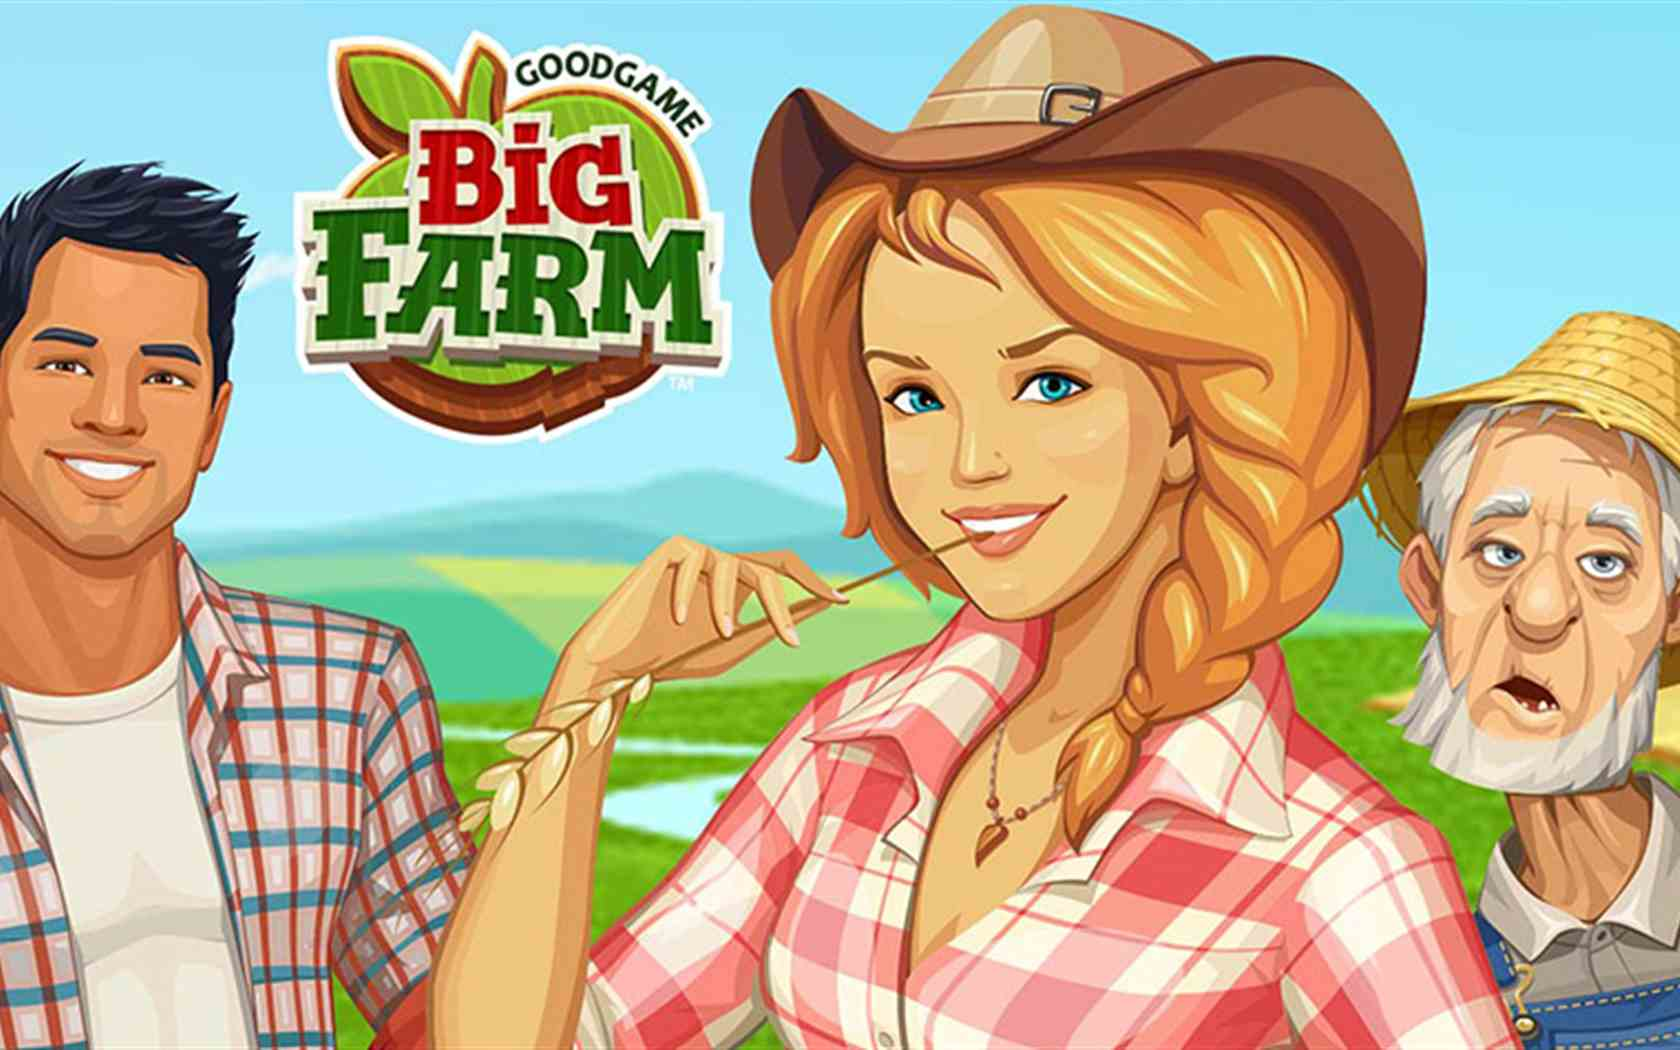 bigfarm goodgames